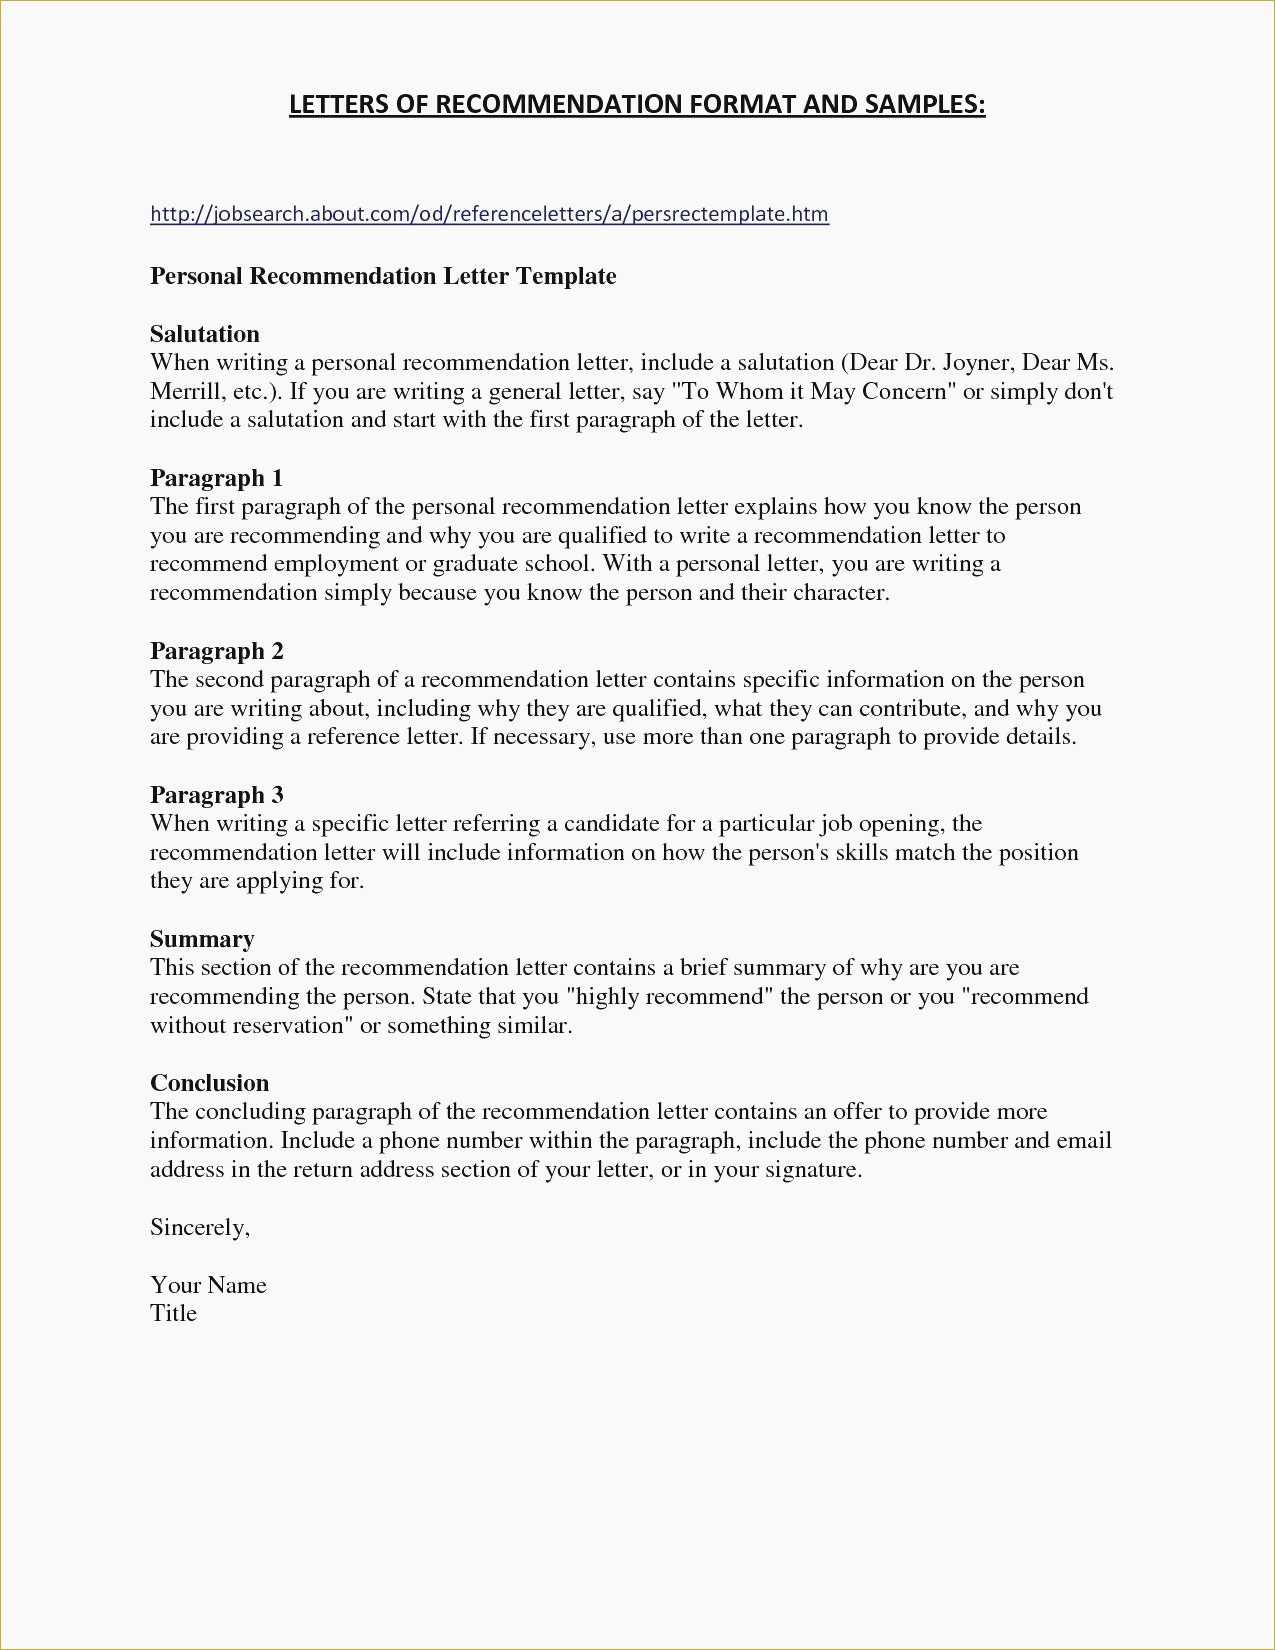 reservation of rights letter template example-Gallery of Personal Reference Letter Template Word 20-k